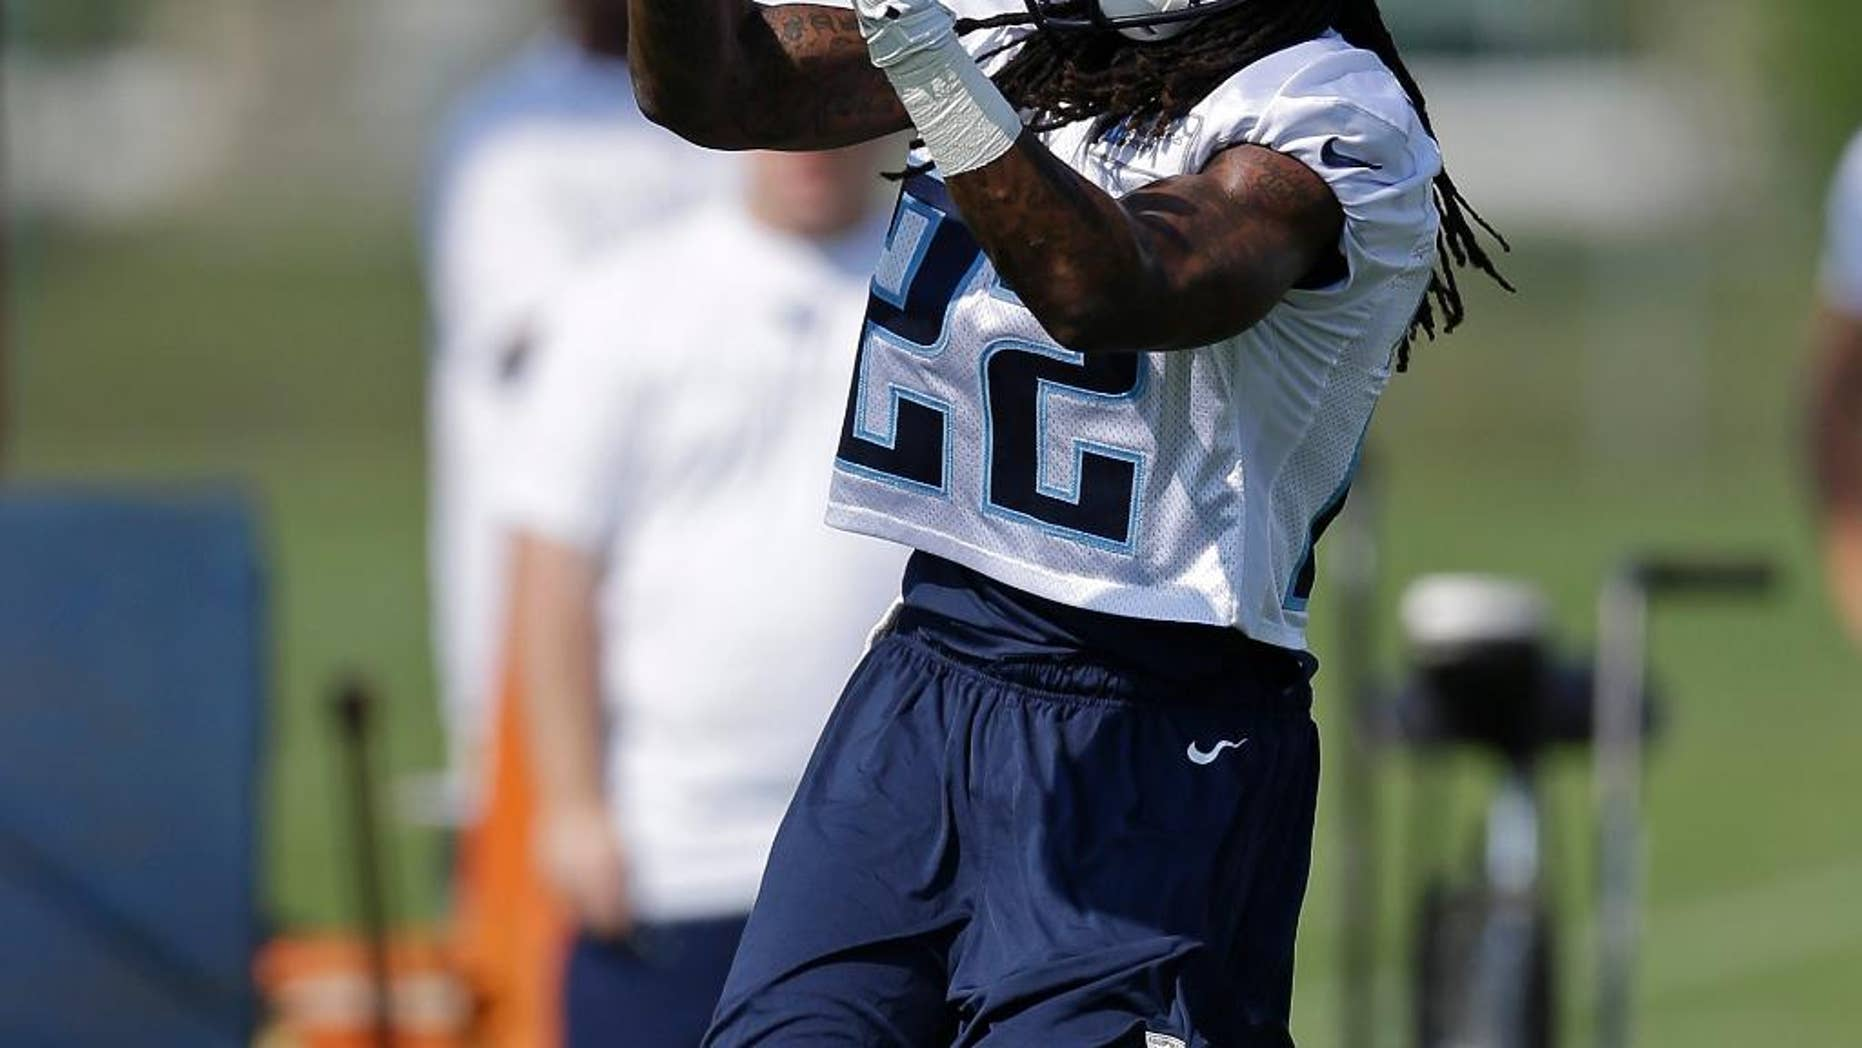 Tennessee Titans running back Dexter McCluster runs a drill during an NFL football training camp Saturday, July 26, 2014, in Nashville, Tenn. (AP Photo/Mark Humphrey)